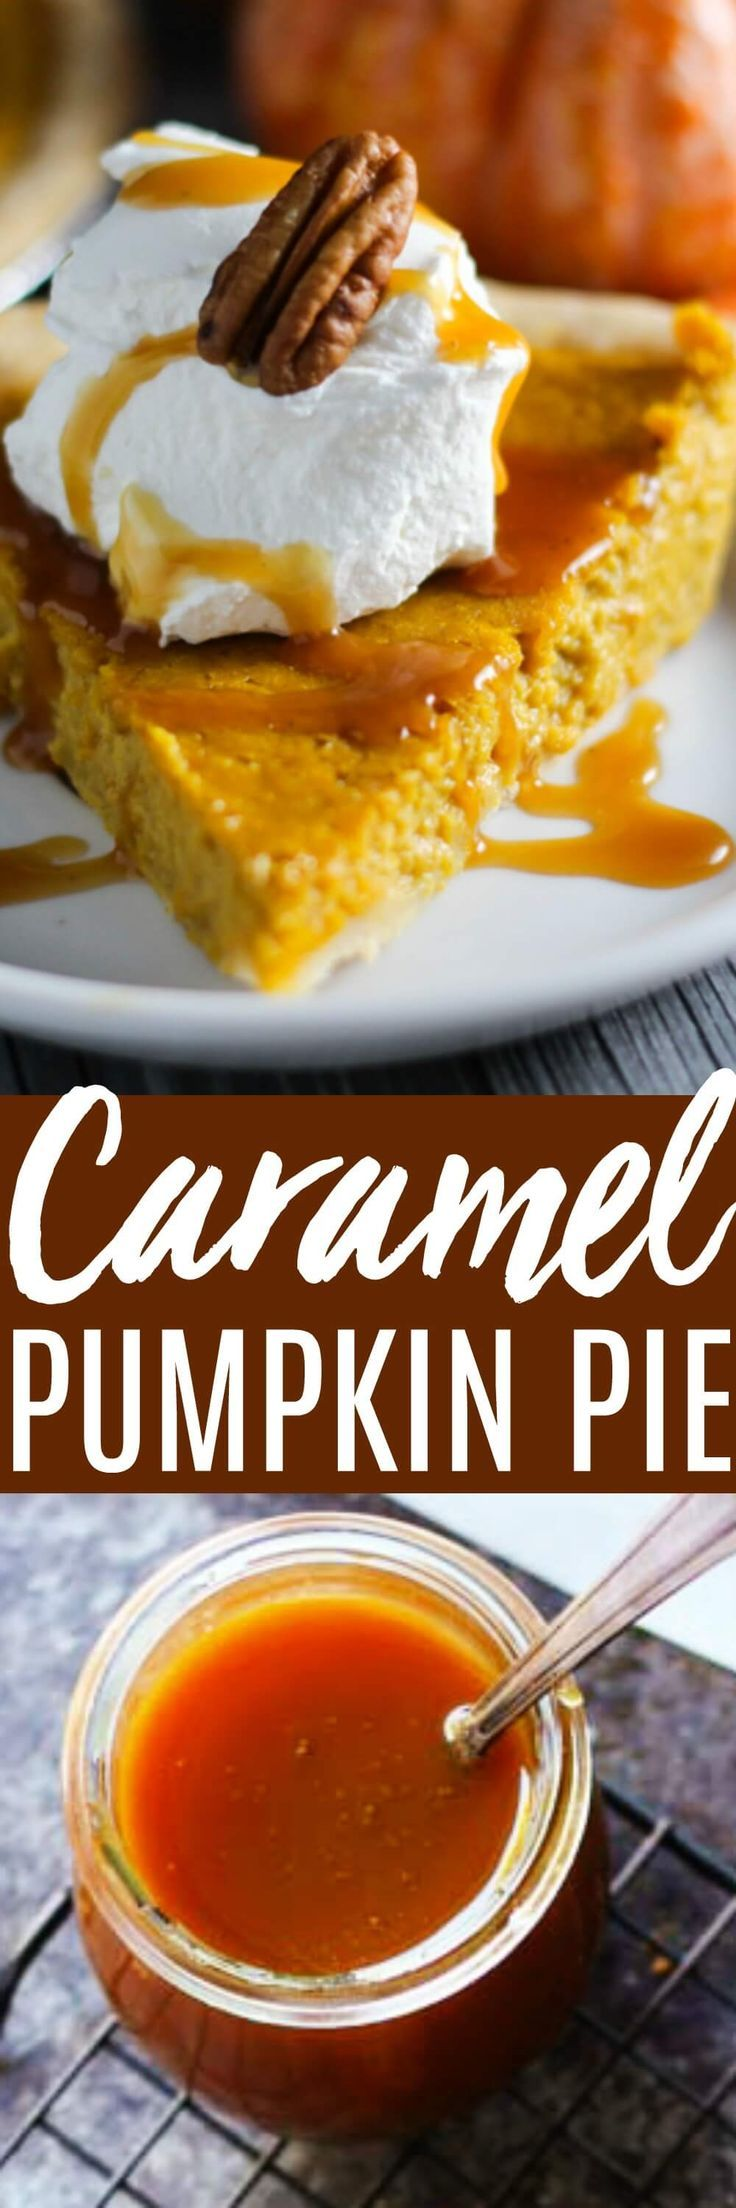 Easy Pumpkin Pie with Salted Caramel Sauce puts a new twist on an old classic. This Pumpkin Pie is so delicious topped with an easy 15-minute salted caramel sauce.